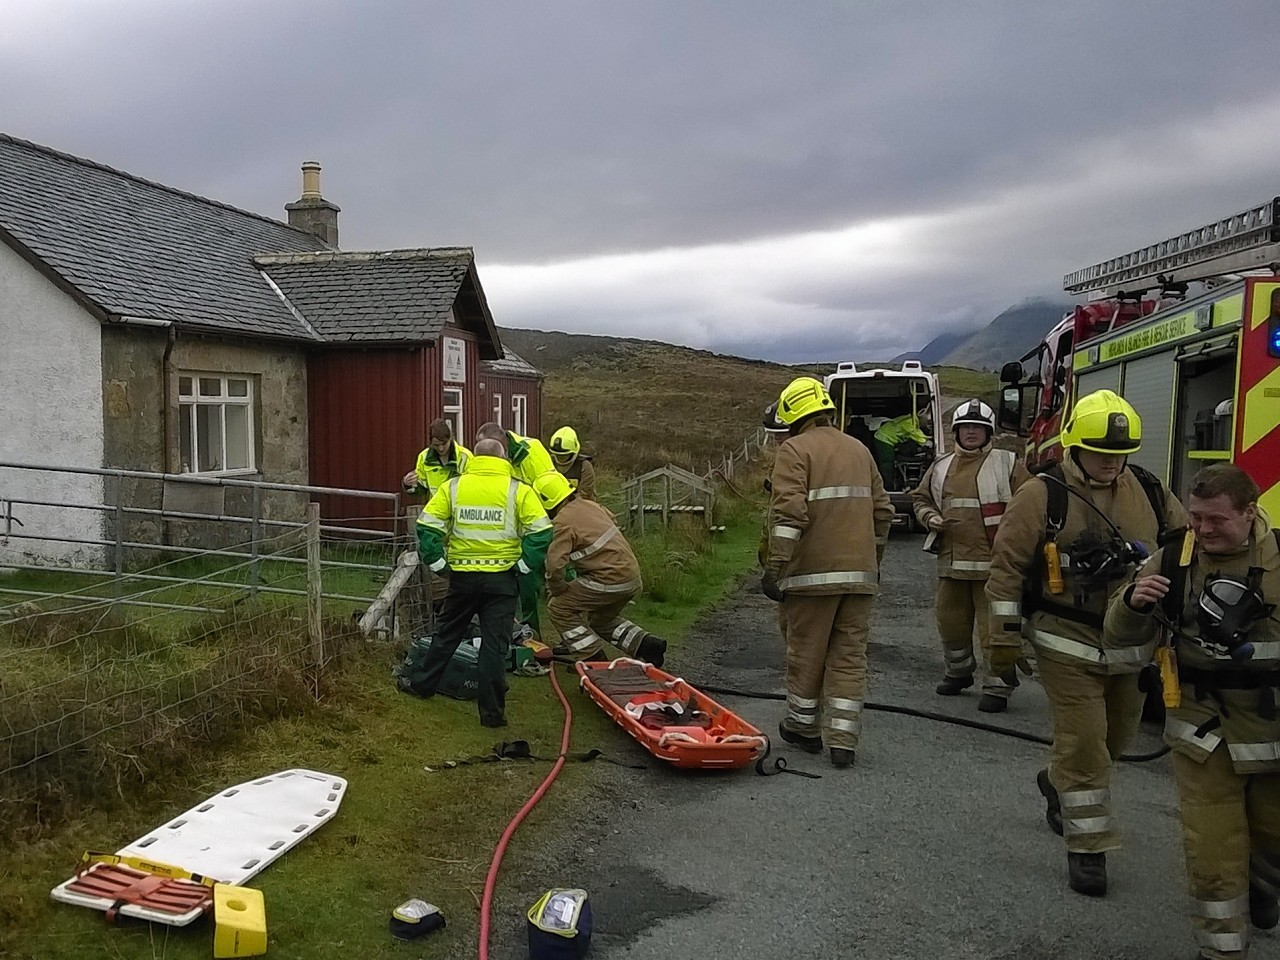 Skye firefighters taking part in a training exercise